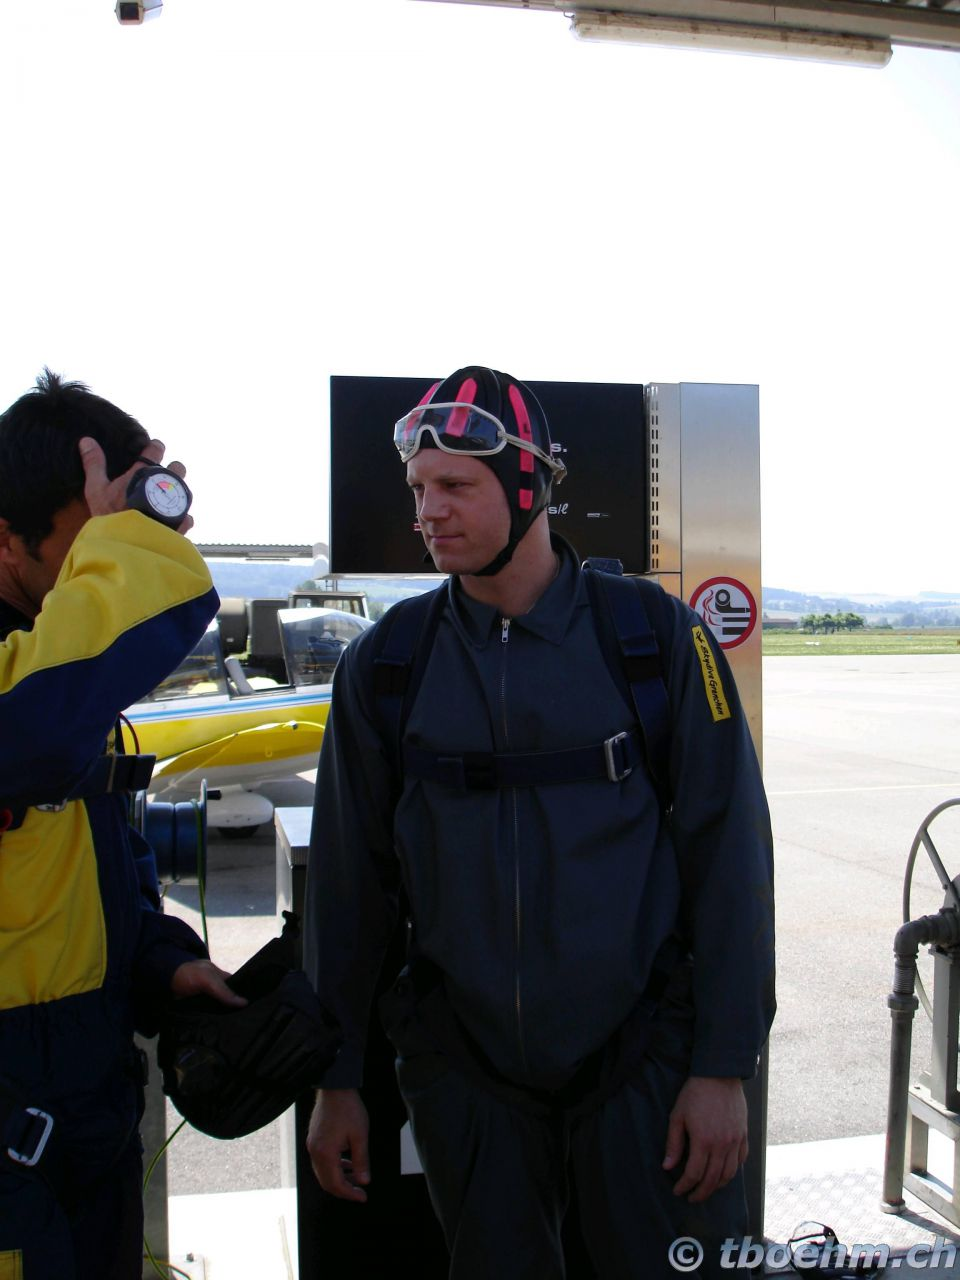 skydive_grenchen_16_07_2006_16_20121125_1682387286